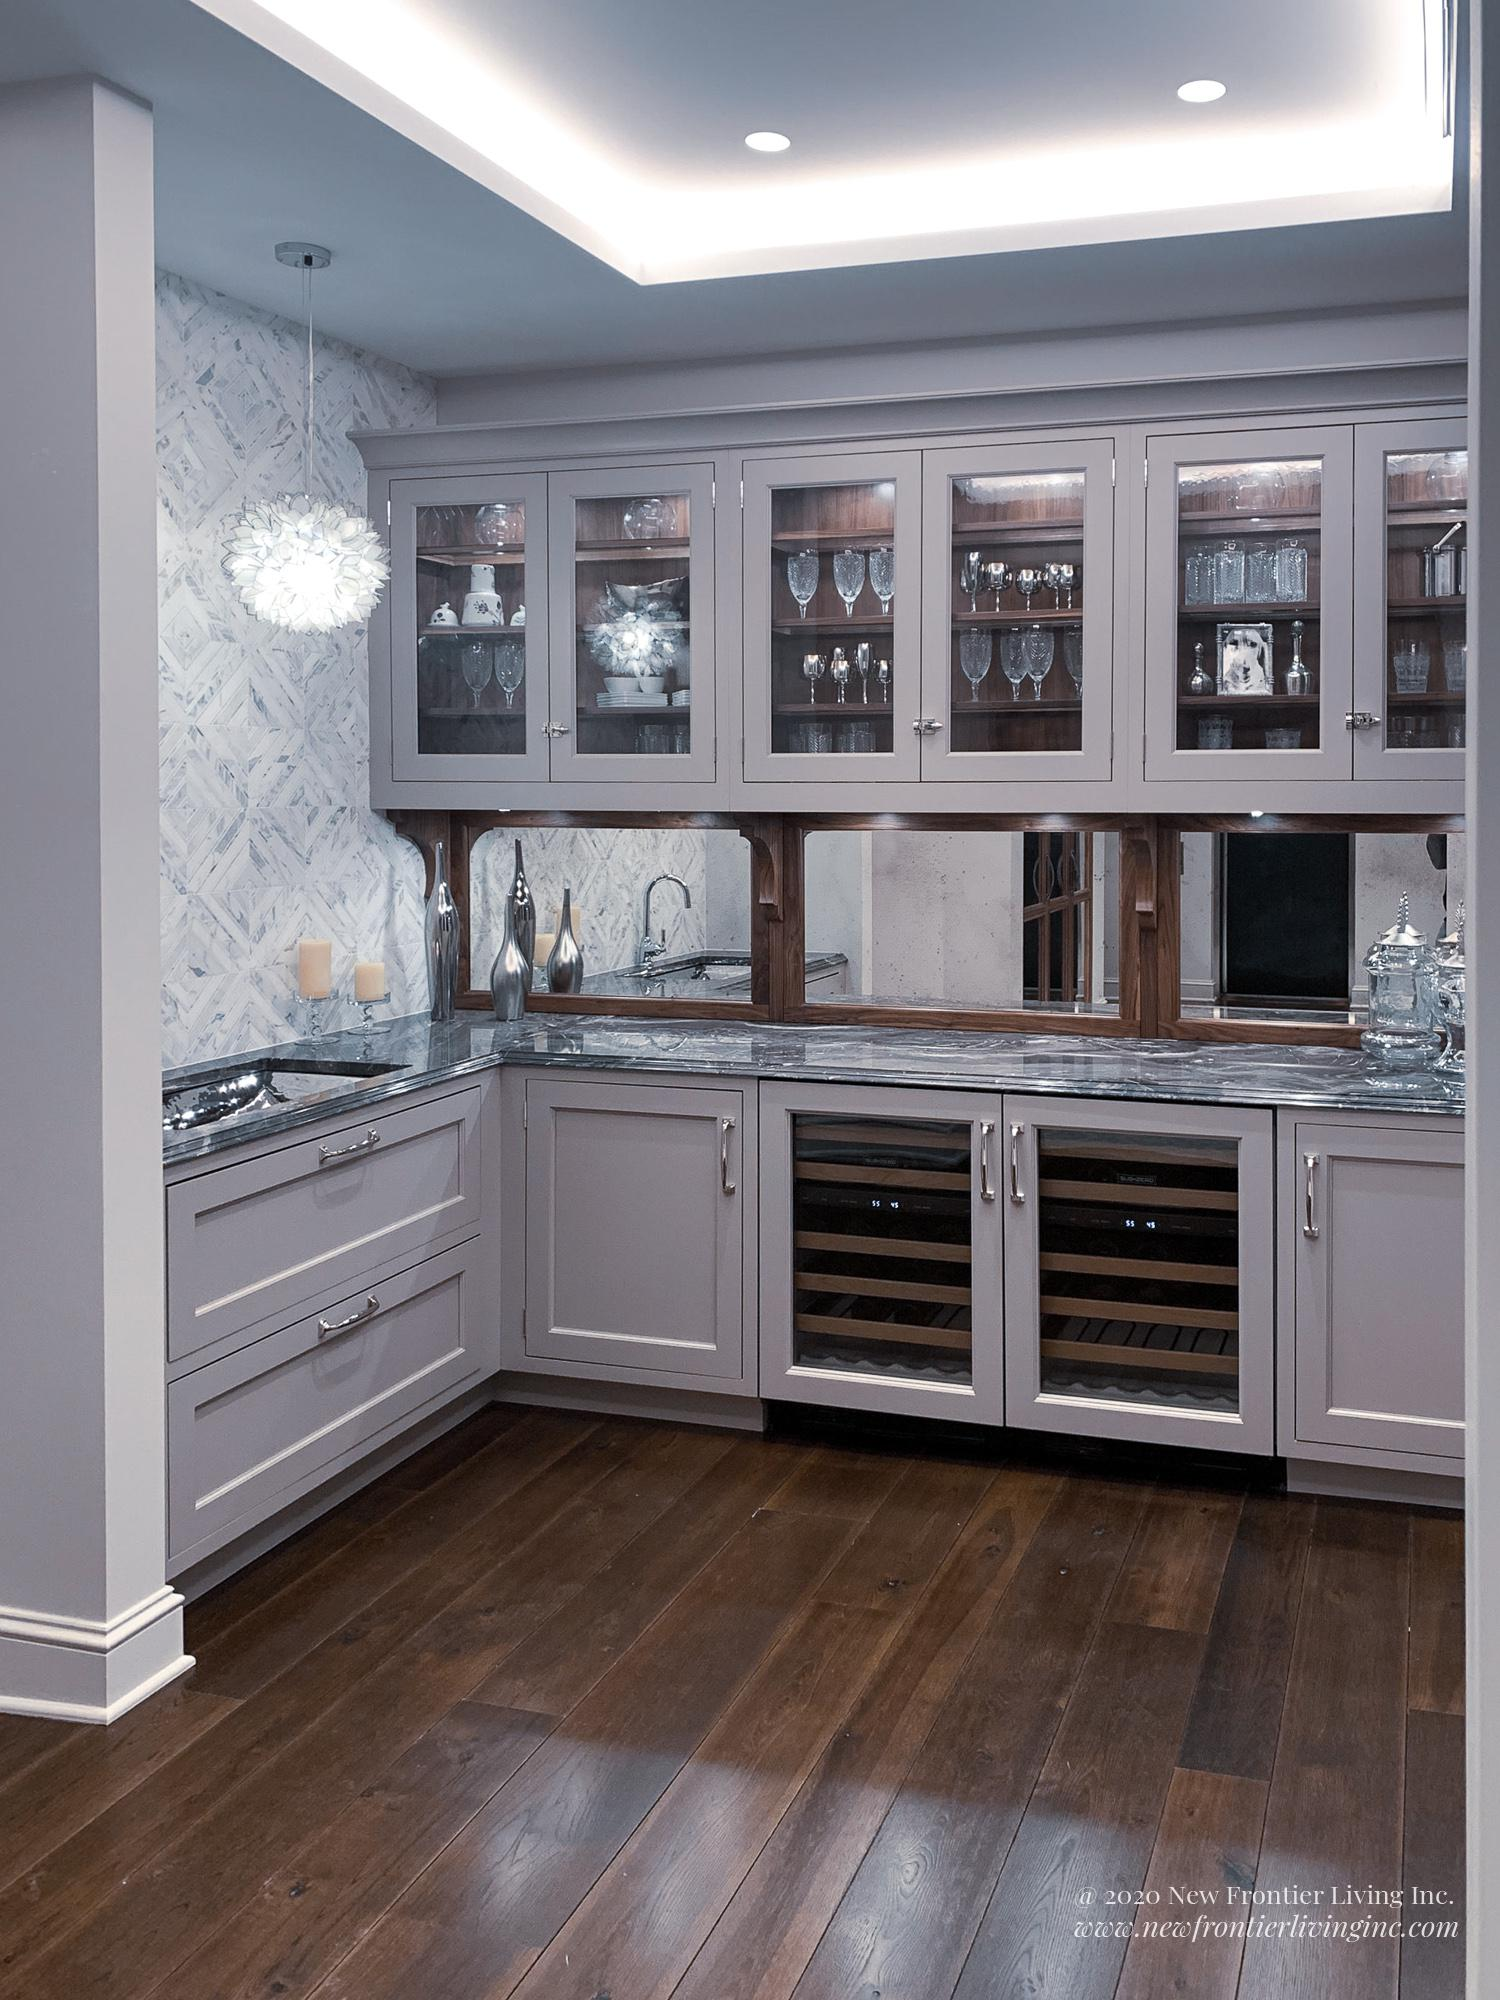 Lavender traditional kitchen cabinetry and upper glass cabinets, wine coolers on the bottom